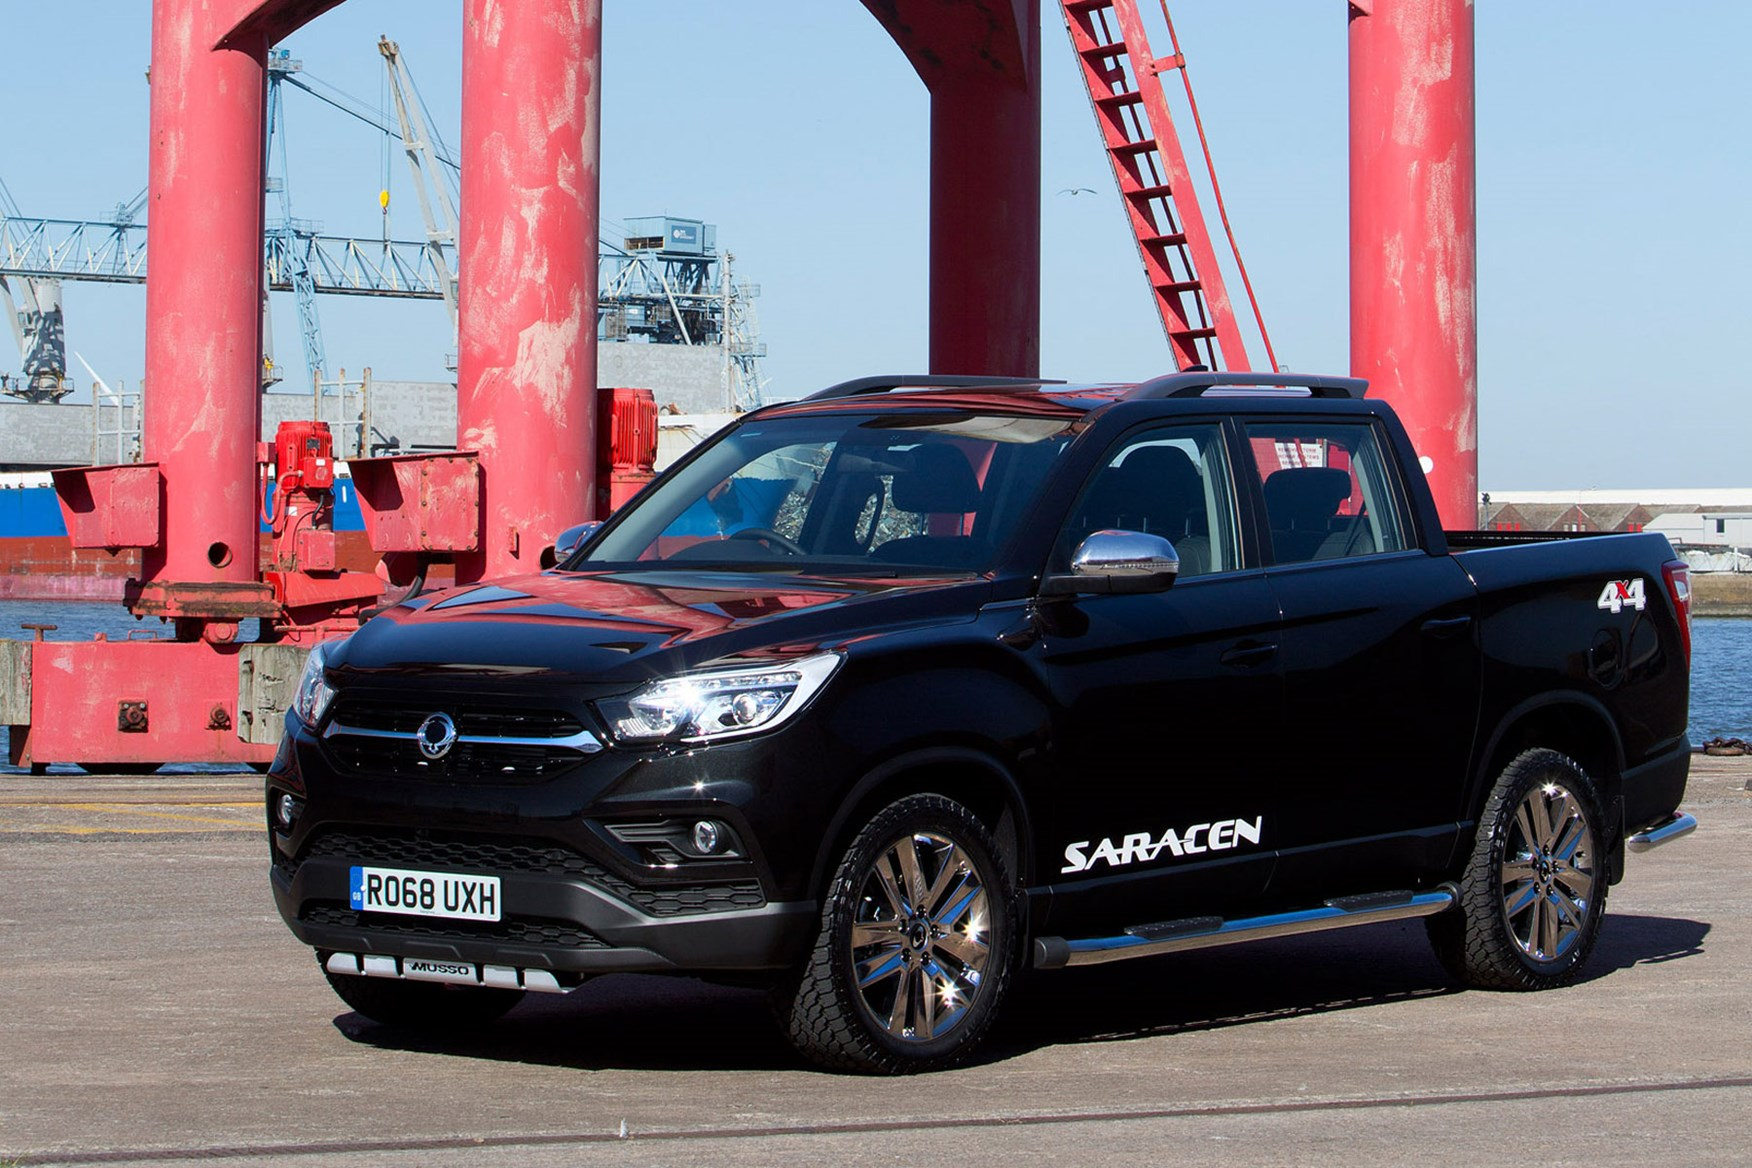 SsangYong Musso (2018-on) review, Saracen, front view, black